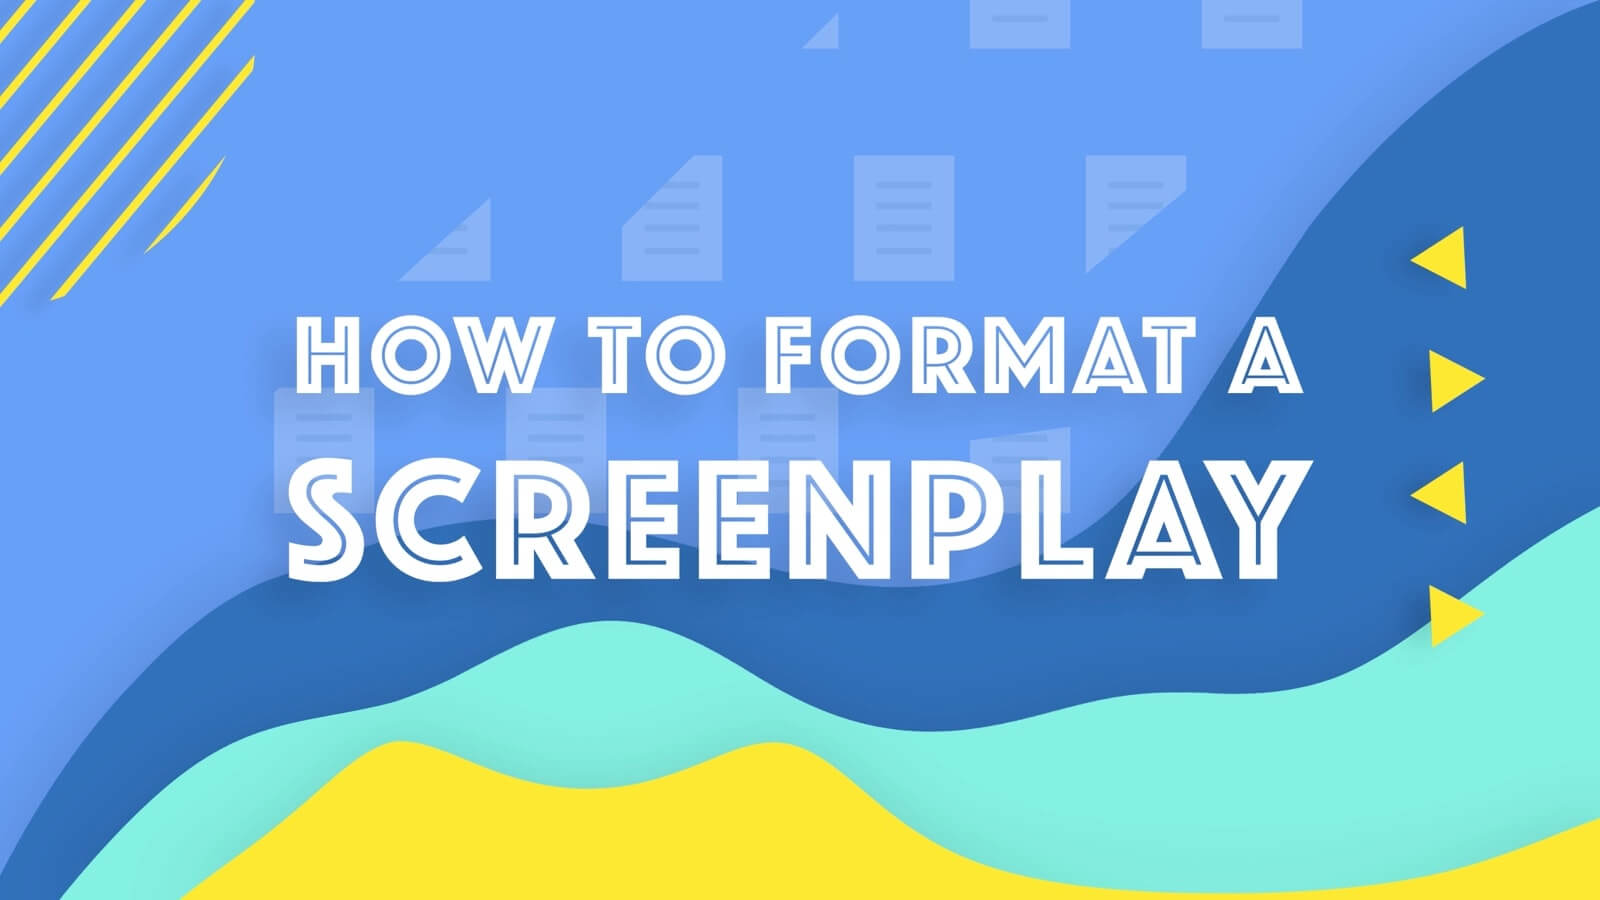 Formatting a Screenplay - Screenplay Format - Social Image - StudioBinder